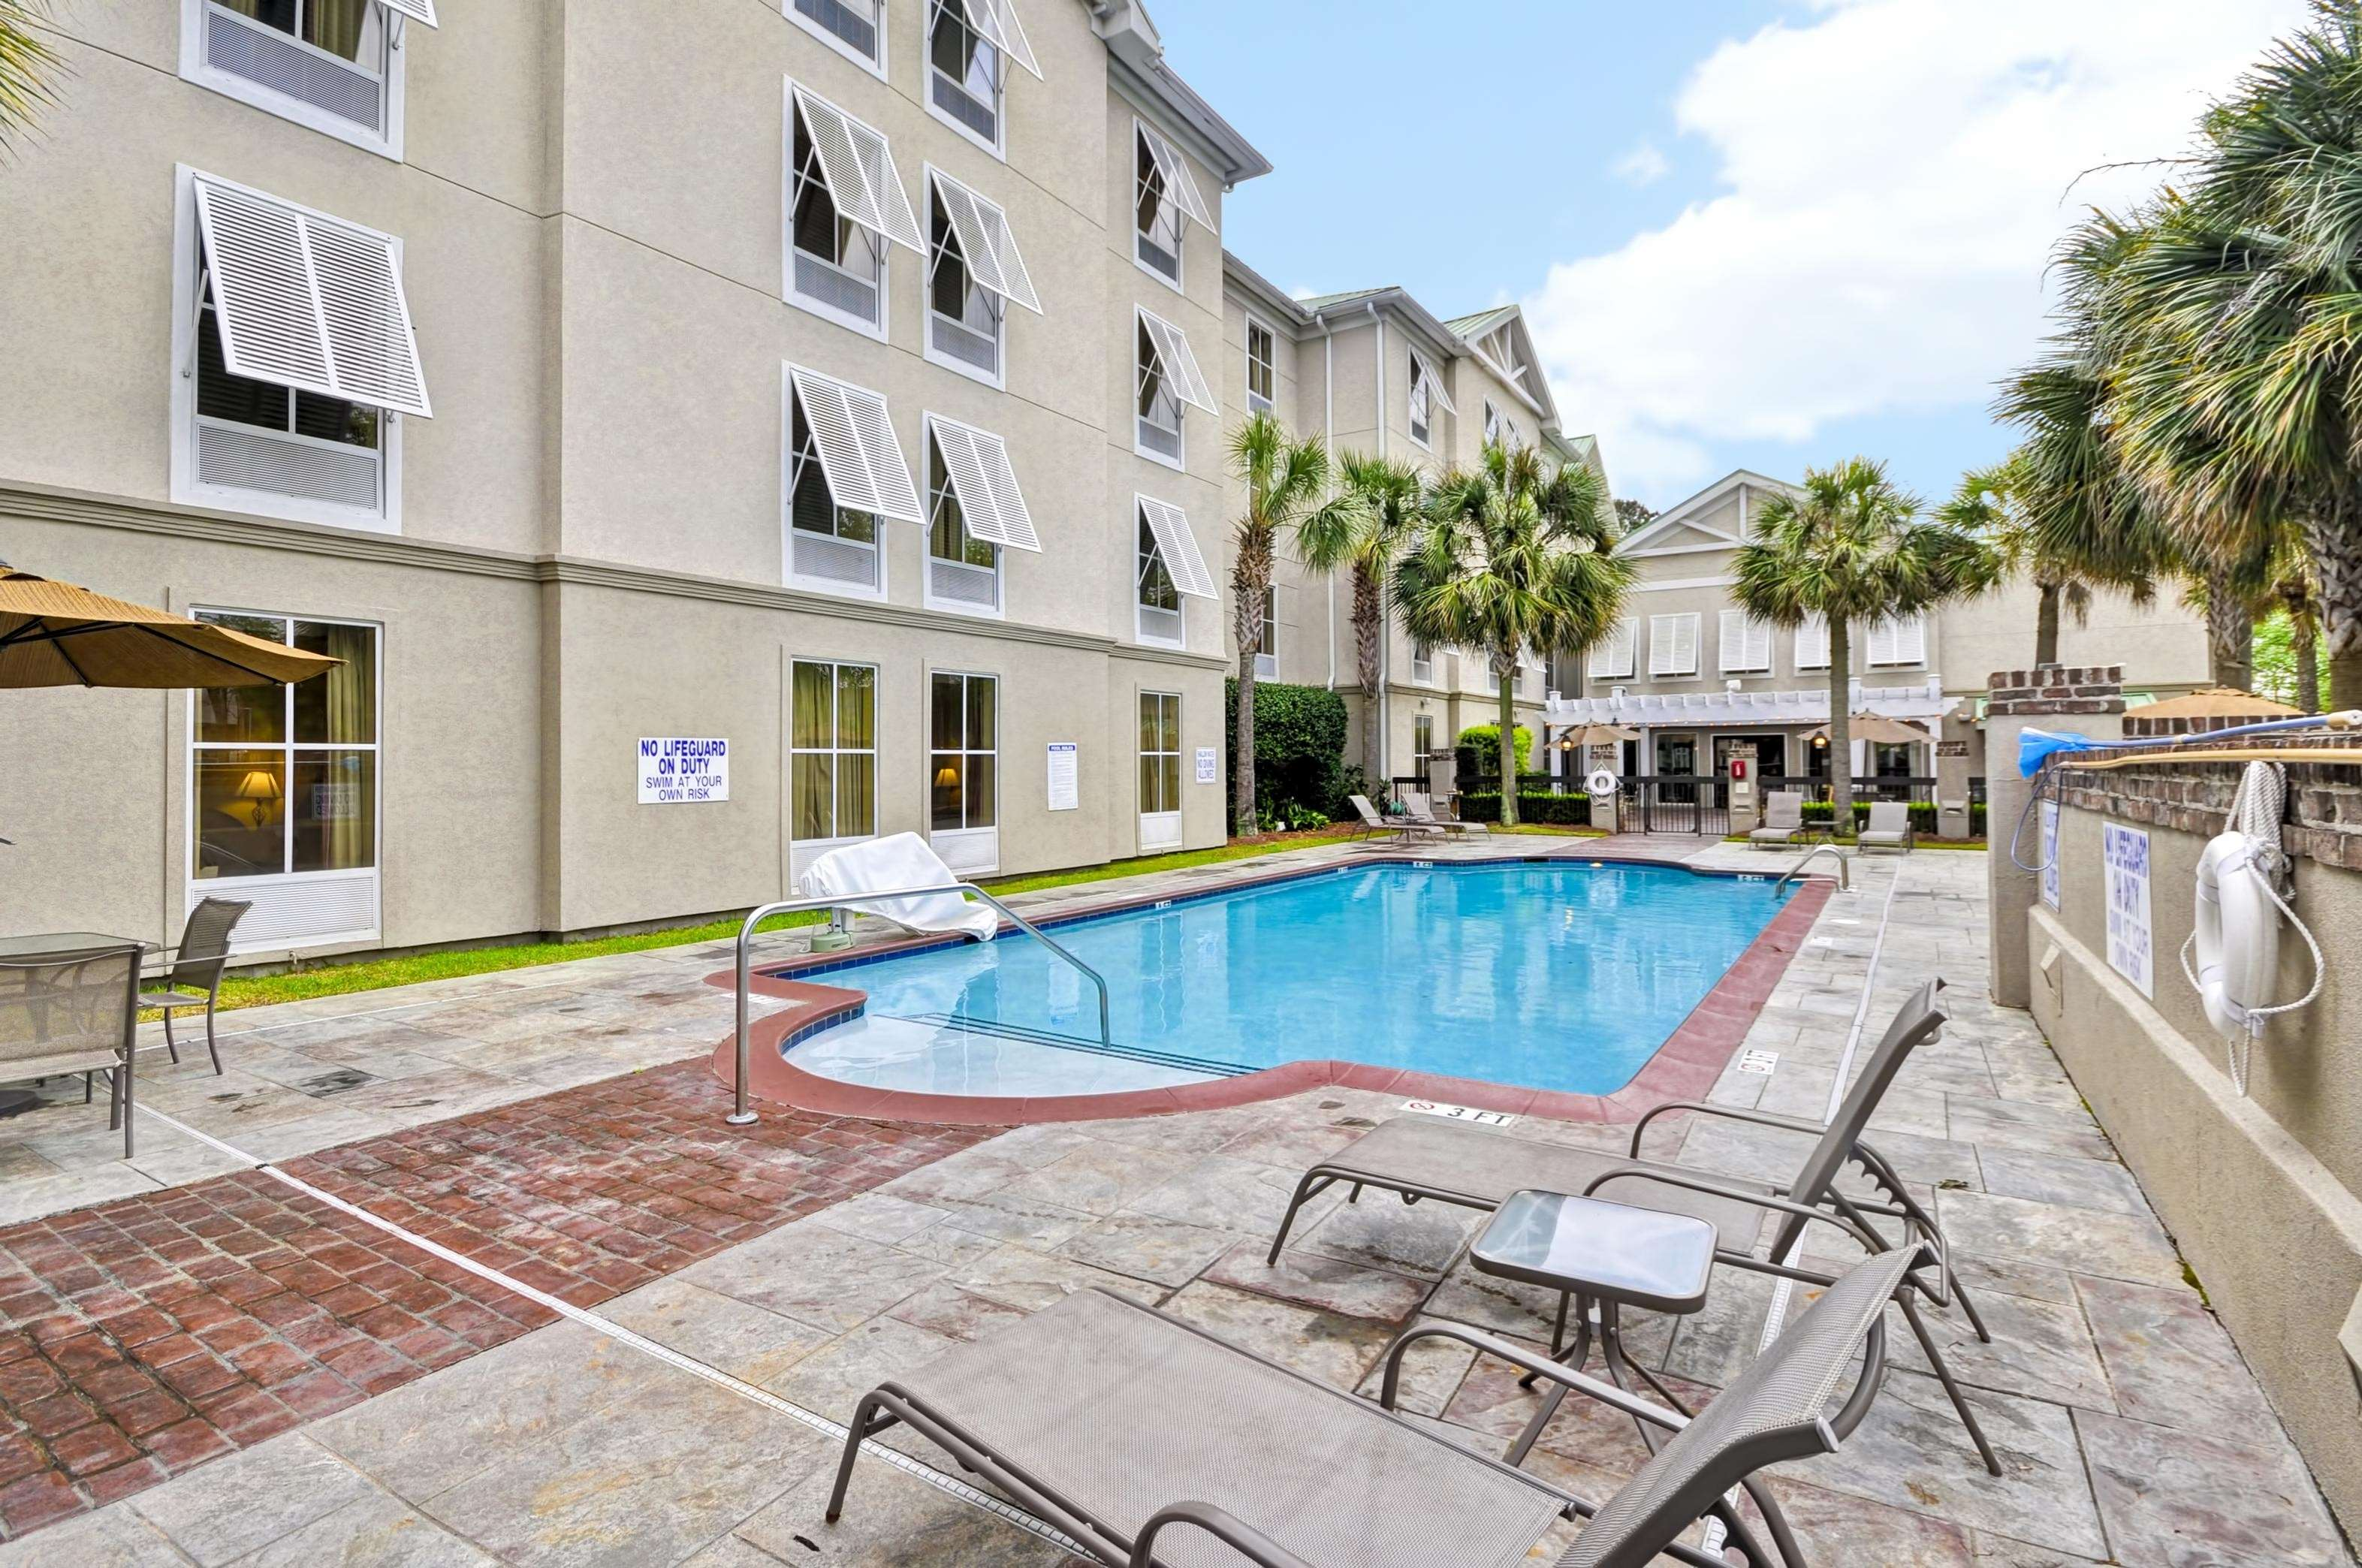 Hampton Inn & Suites Charleston/West Ashley image 8